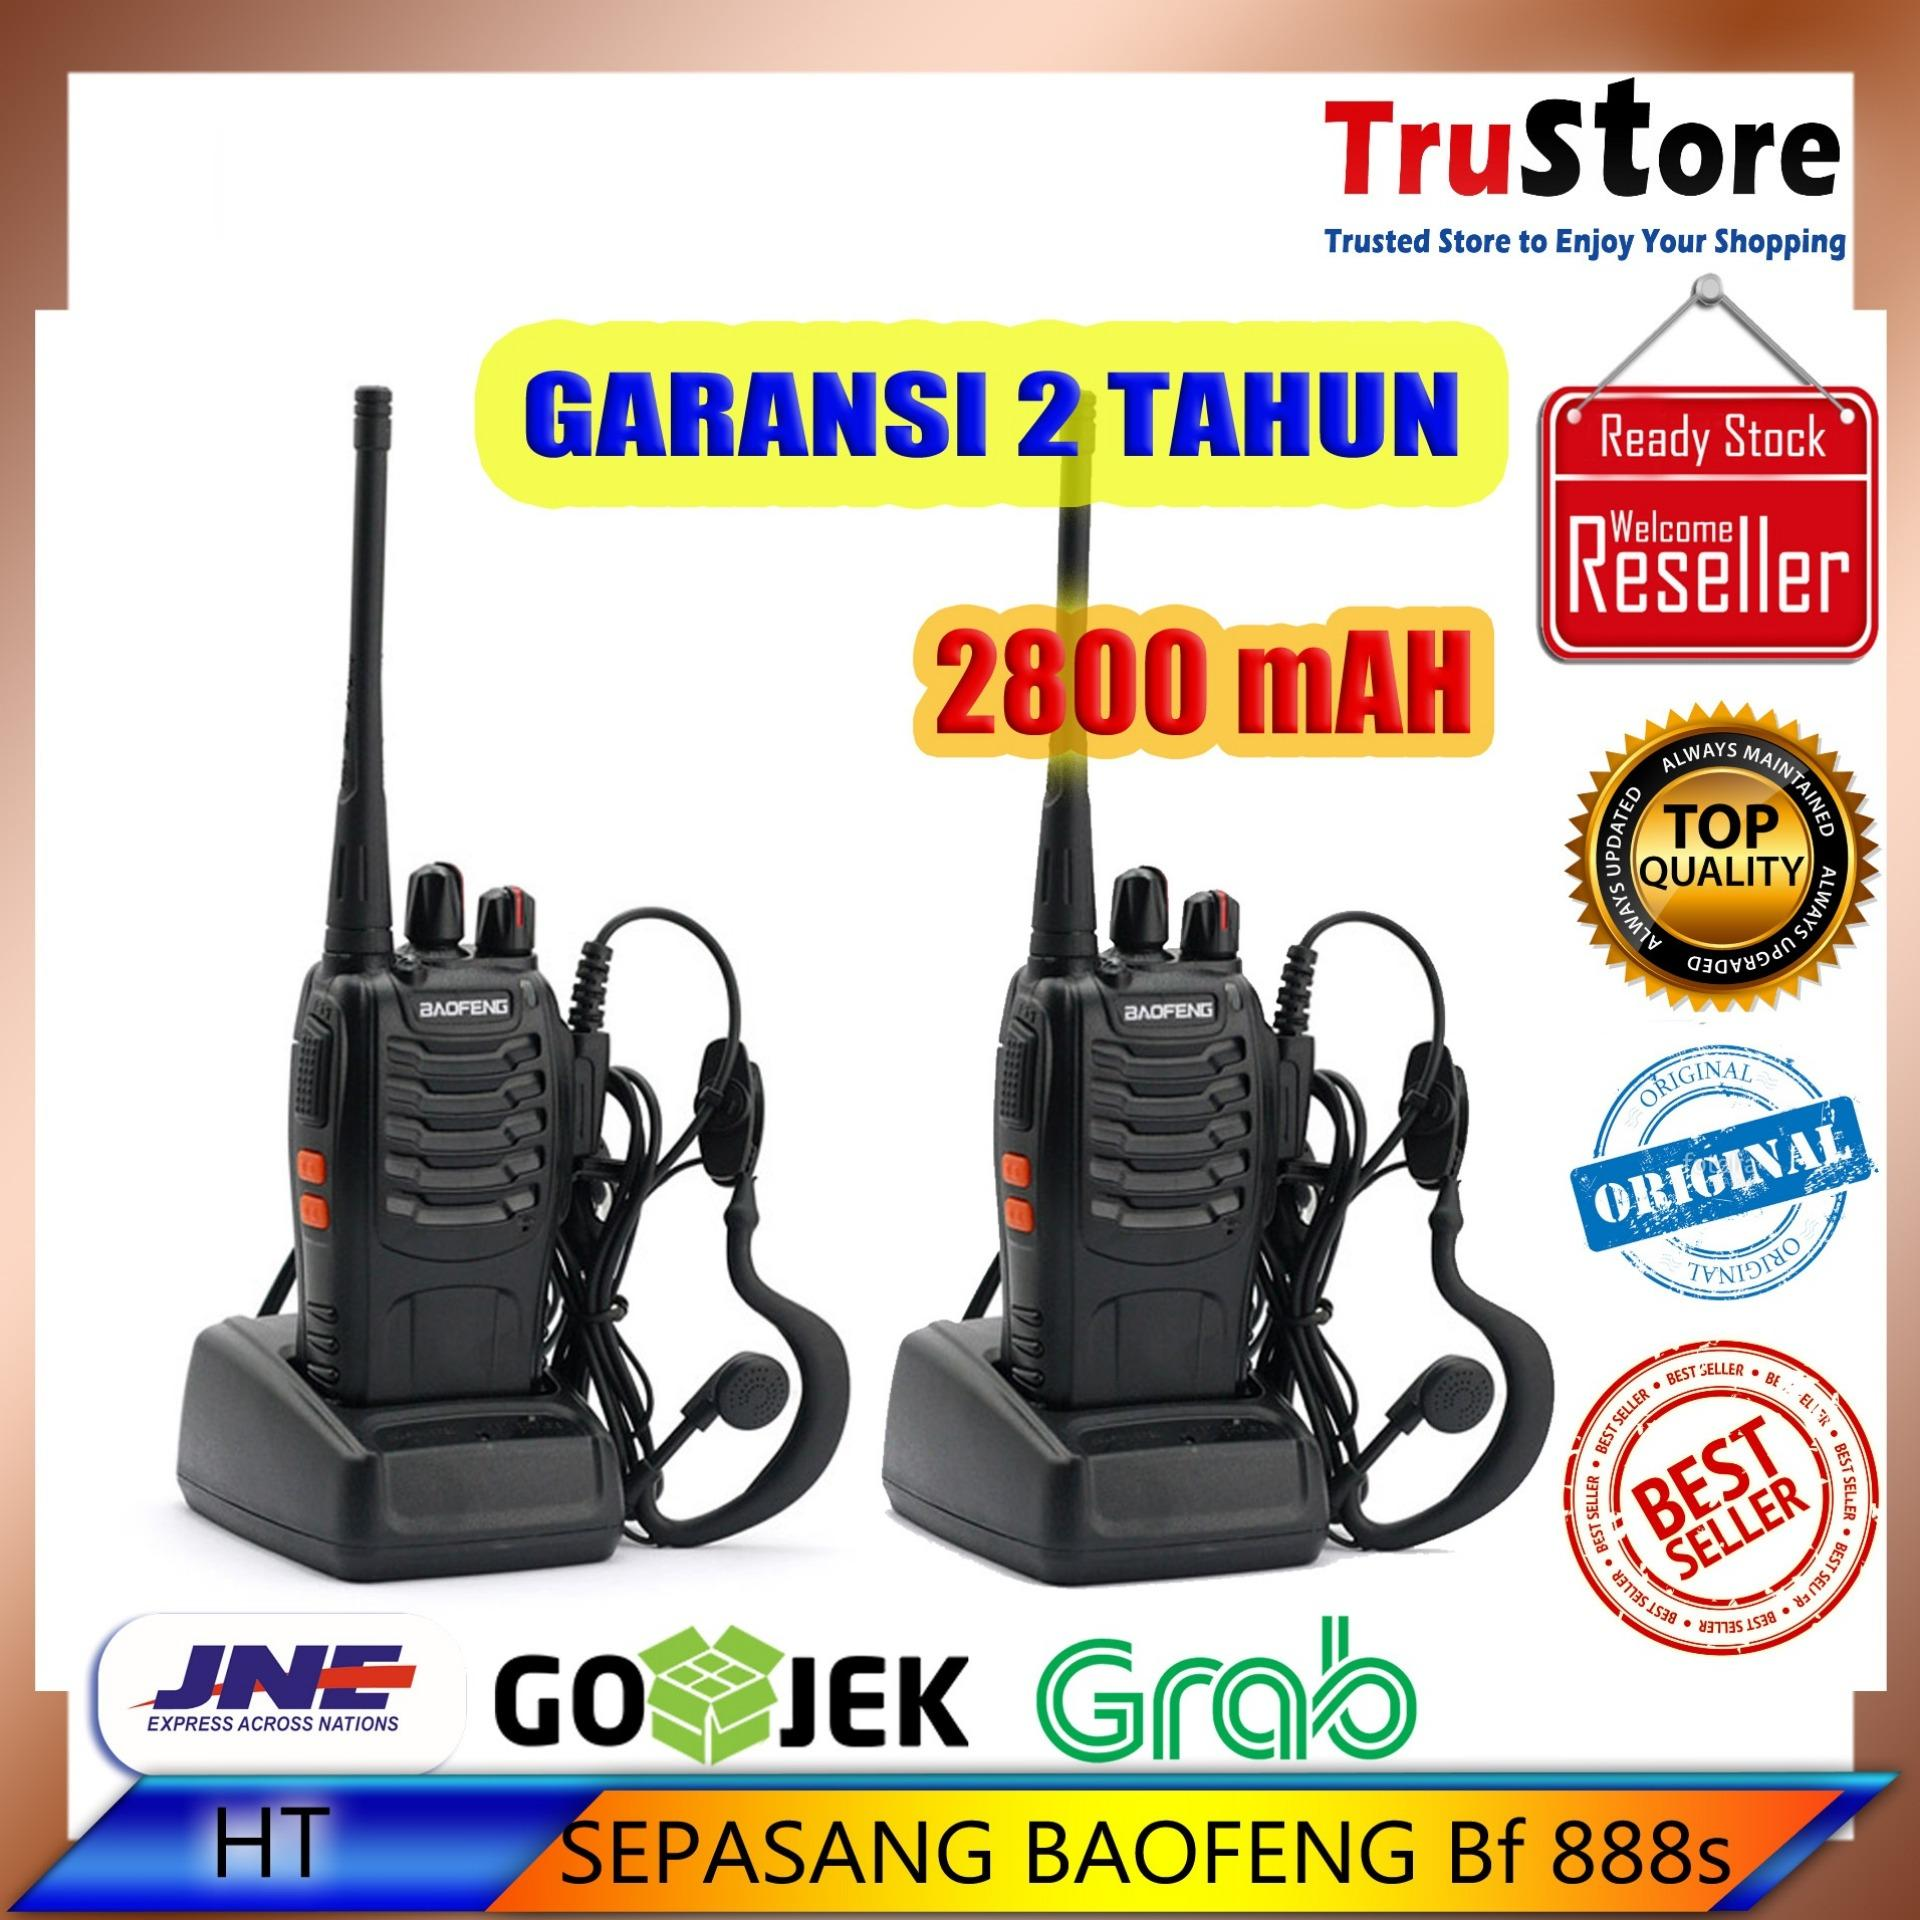 Jual Baofeng Walkie Talkie Ht Mini Uv 3r Handy Talky Dual Band Uv3r Uhf Vhf Bf Taffware Sepasang Radio 888s Bf888s